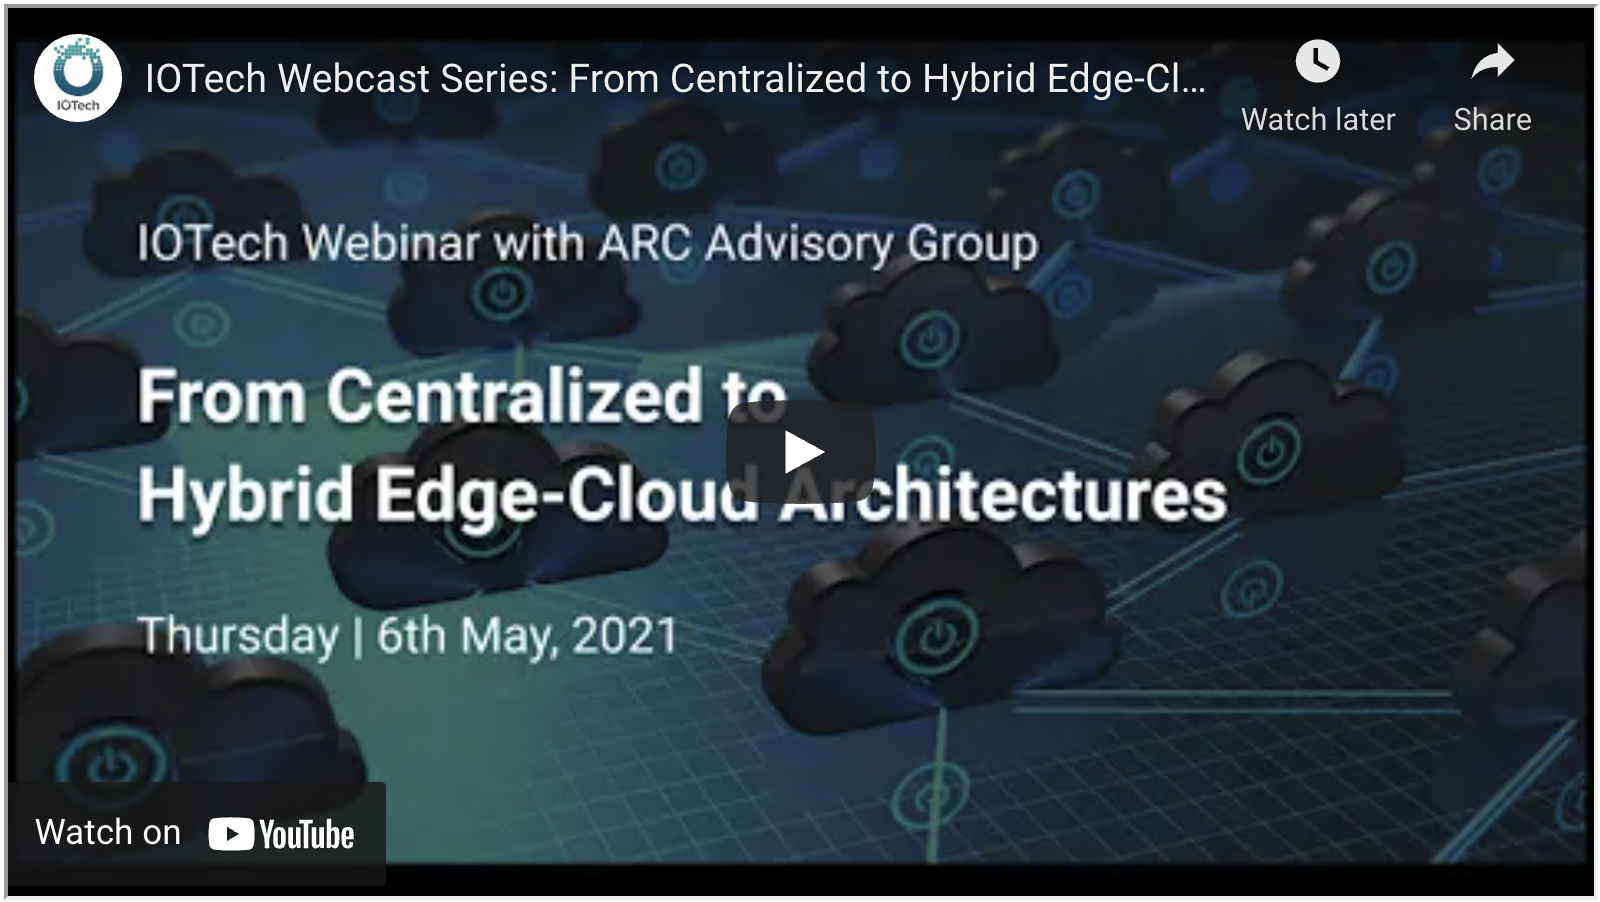 Webinar Video: From Centralized to Hybrid Edge-Cloud Architectures